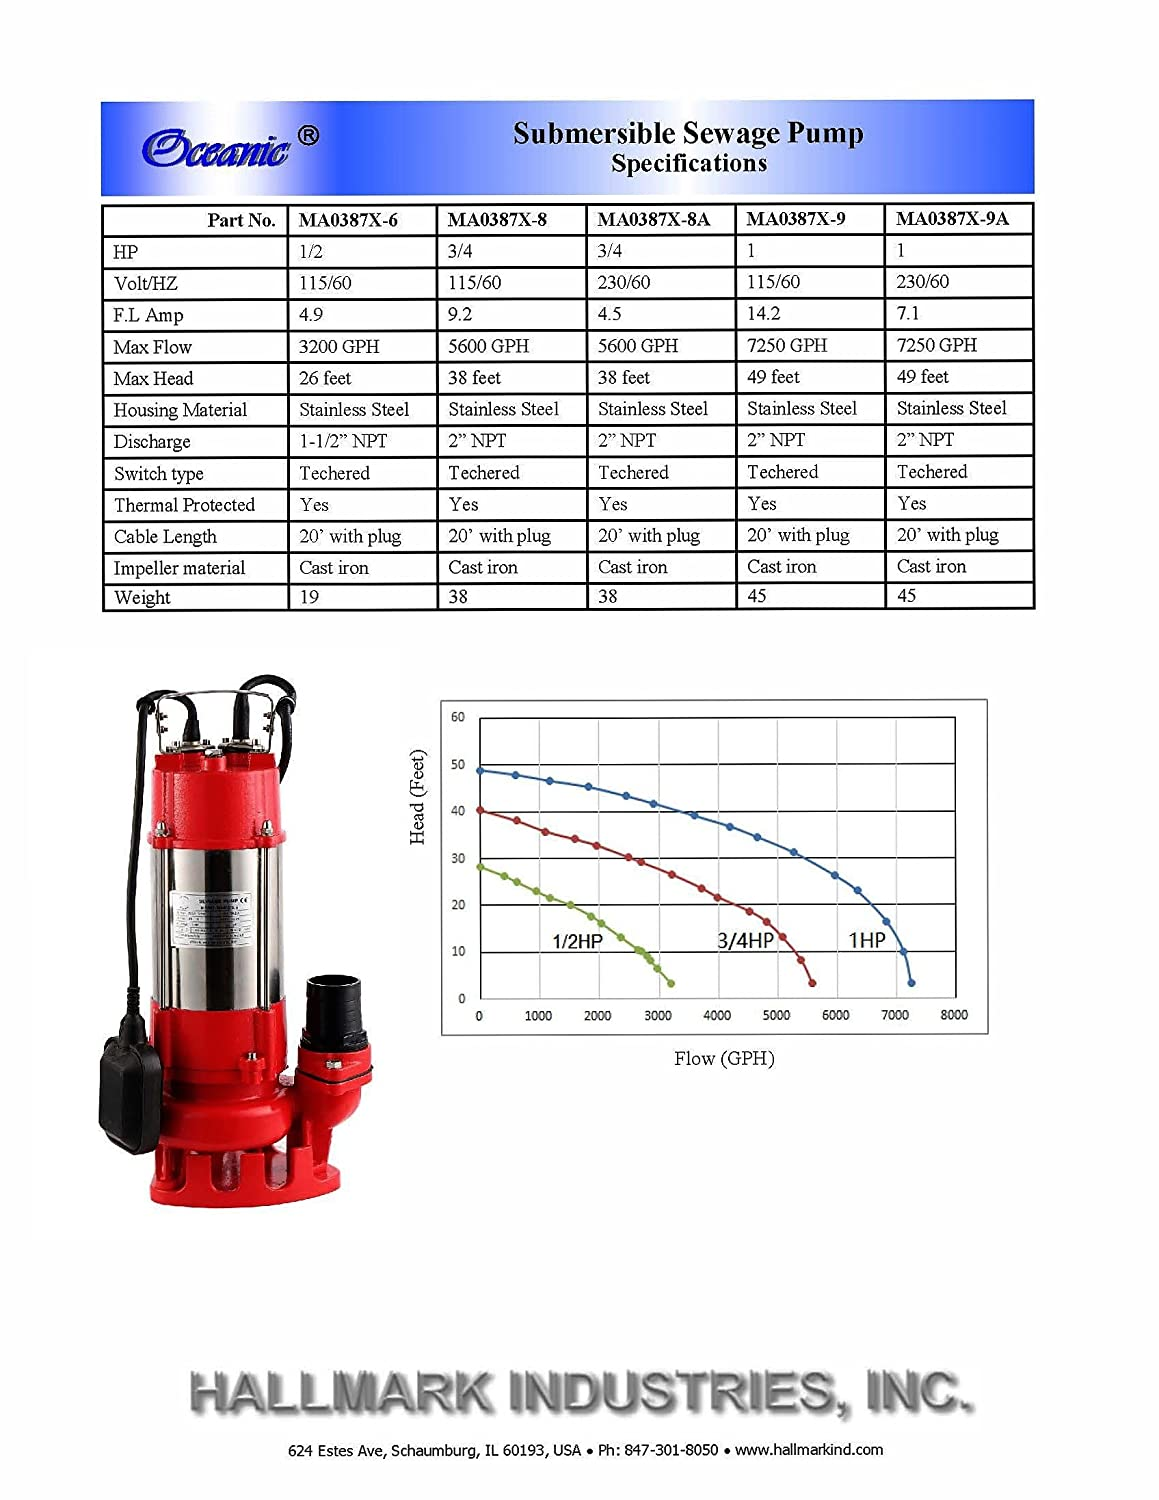 HAN8A 1 hp Stainless Steel 7250 gpm 230V 20 Cable 49/' Lift 20/' Cable Hallmark Industries Hallmark Industries MA0387X-9A Sewage Pump with Float Switch Heavy Duty 49 Lift